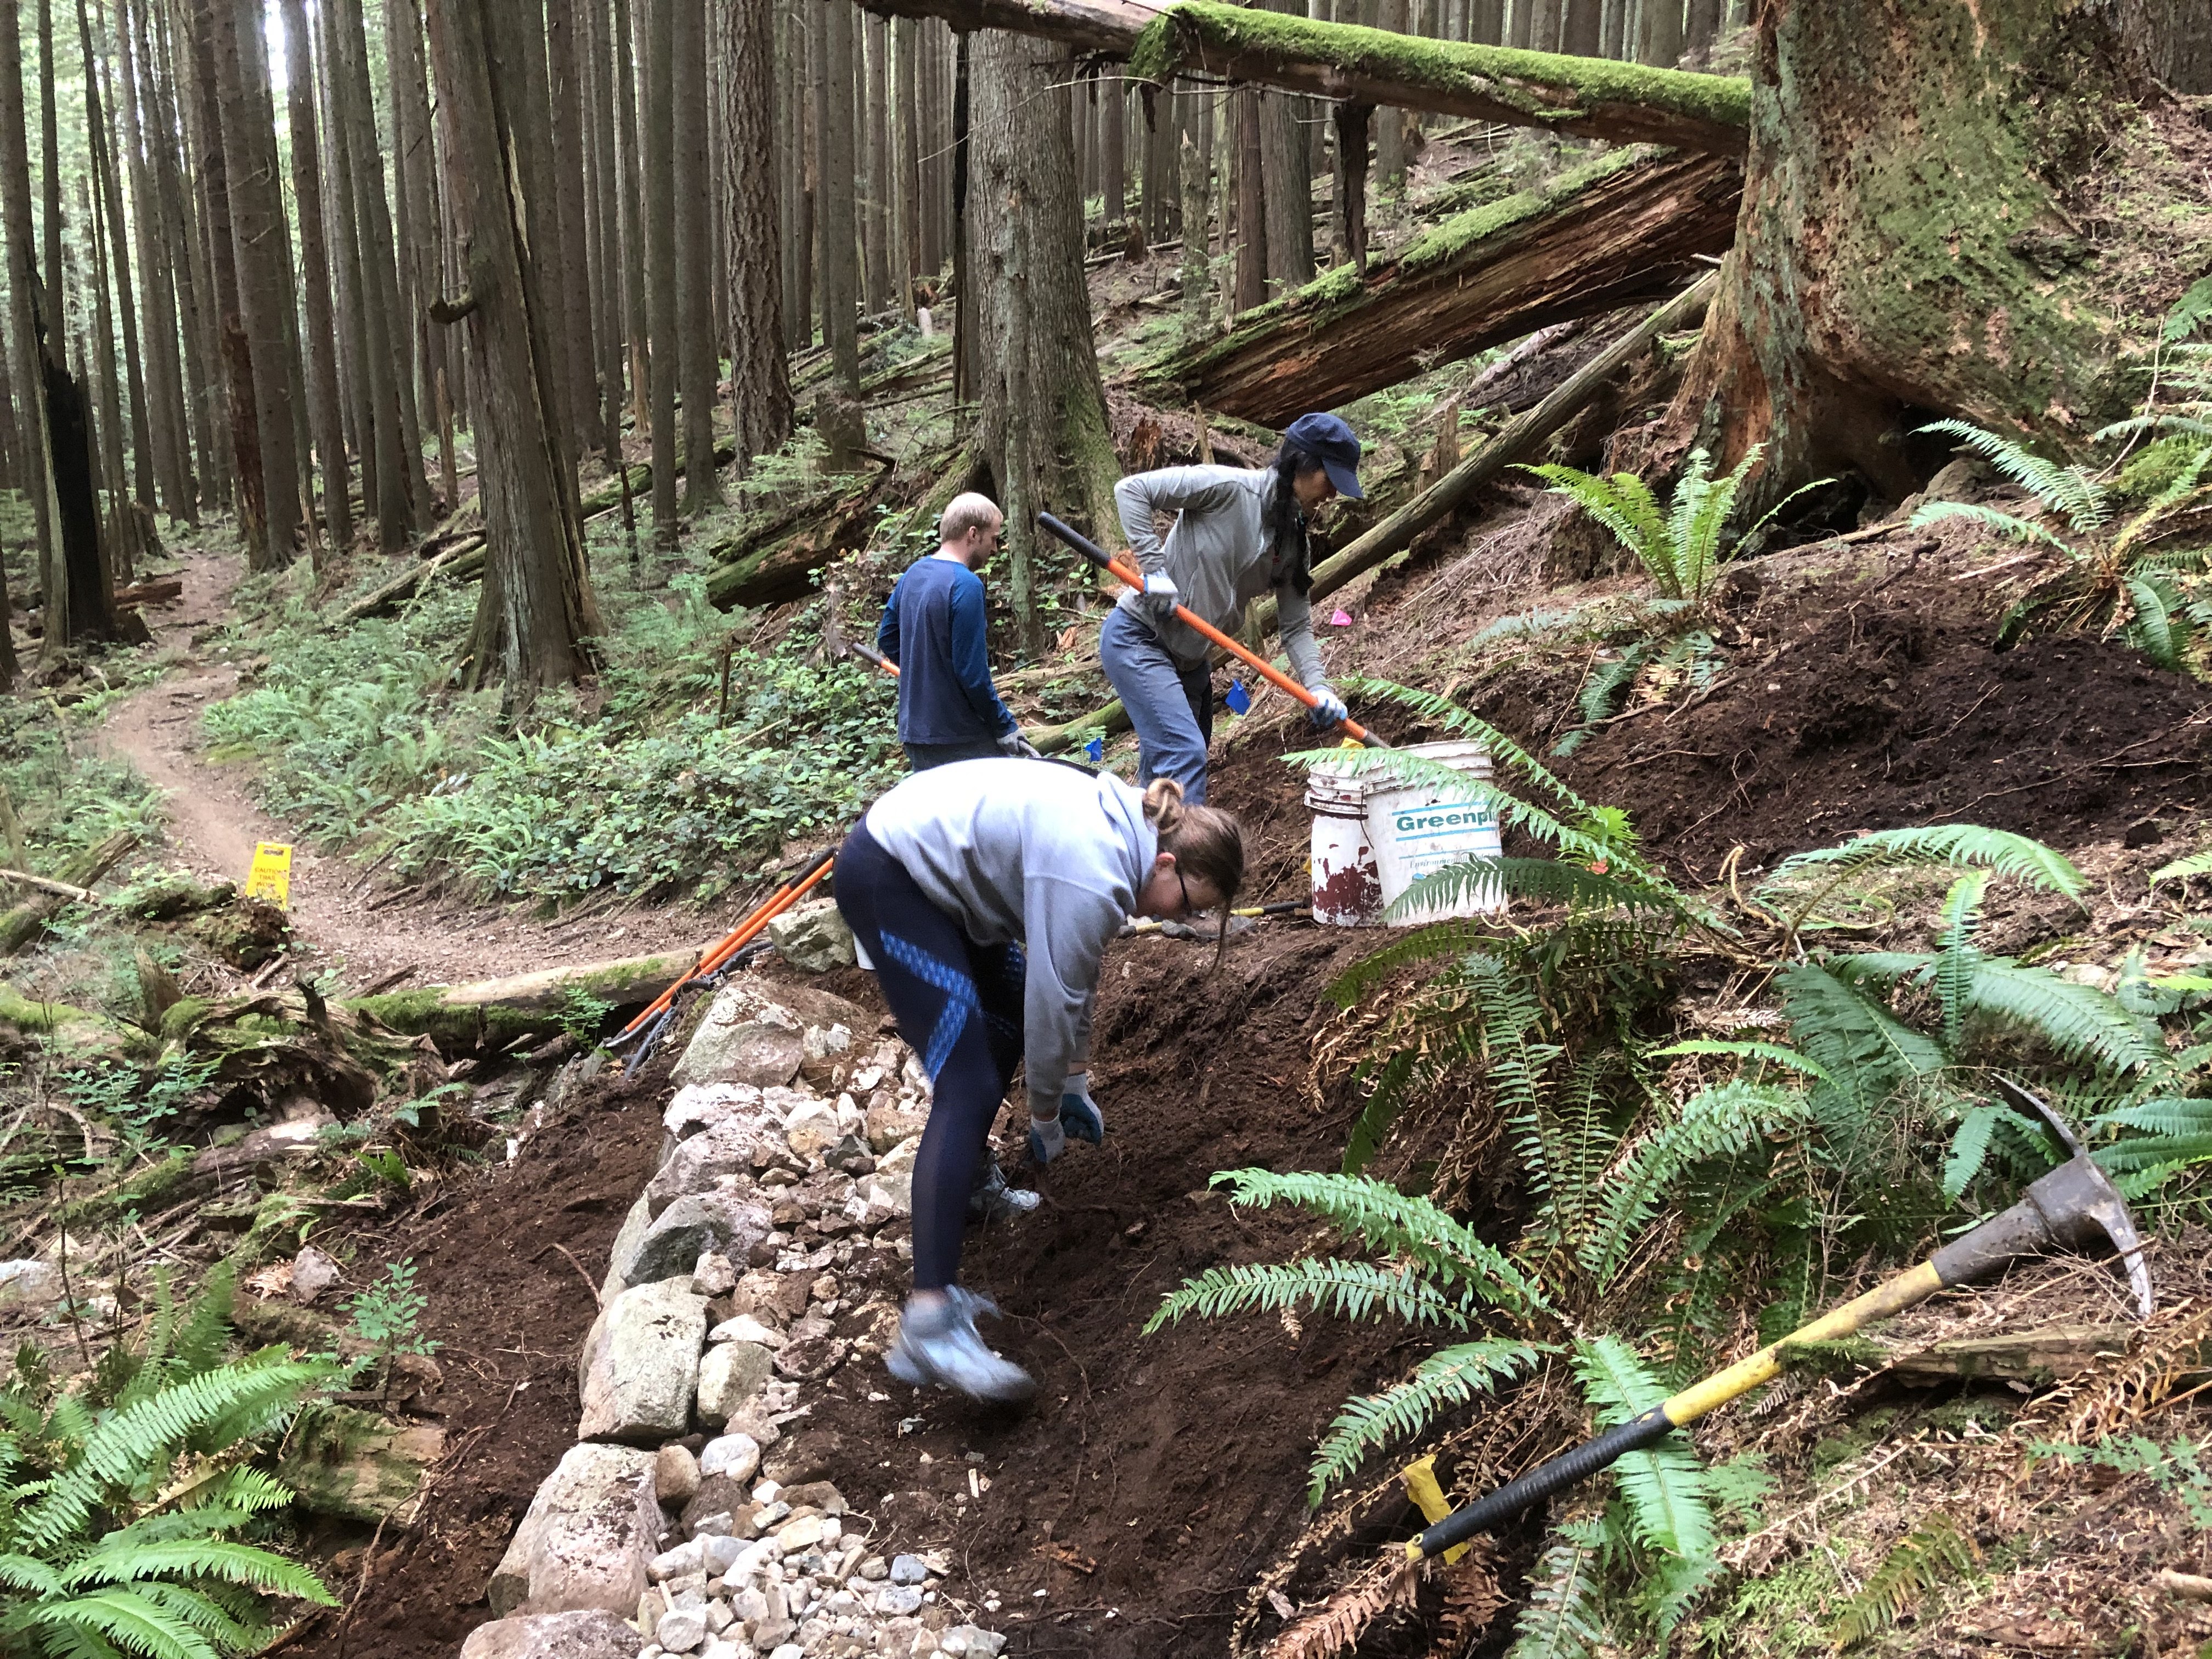 The trail mid way through construction with volunteers moving rock and dirt